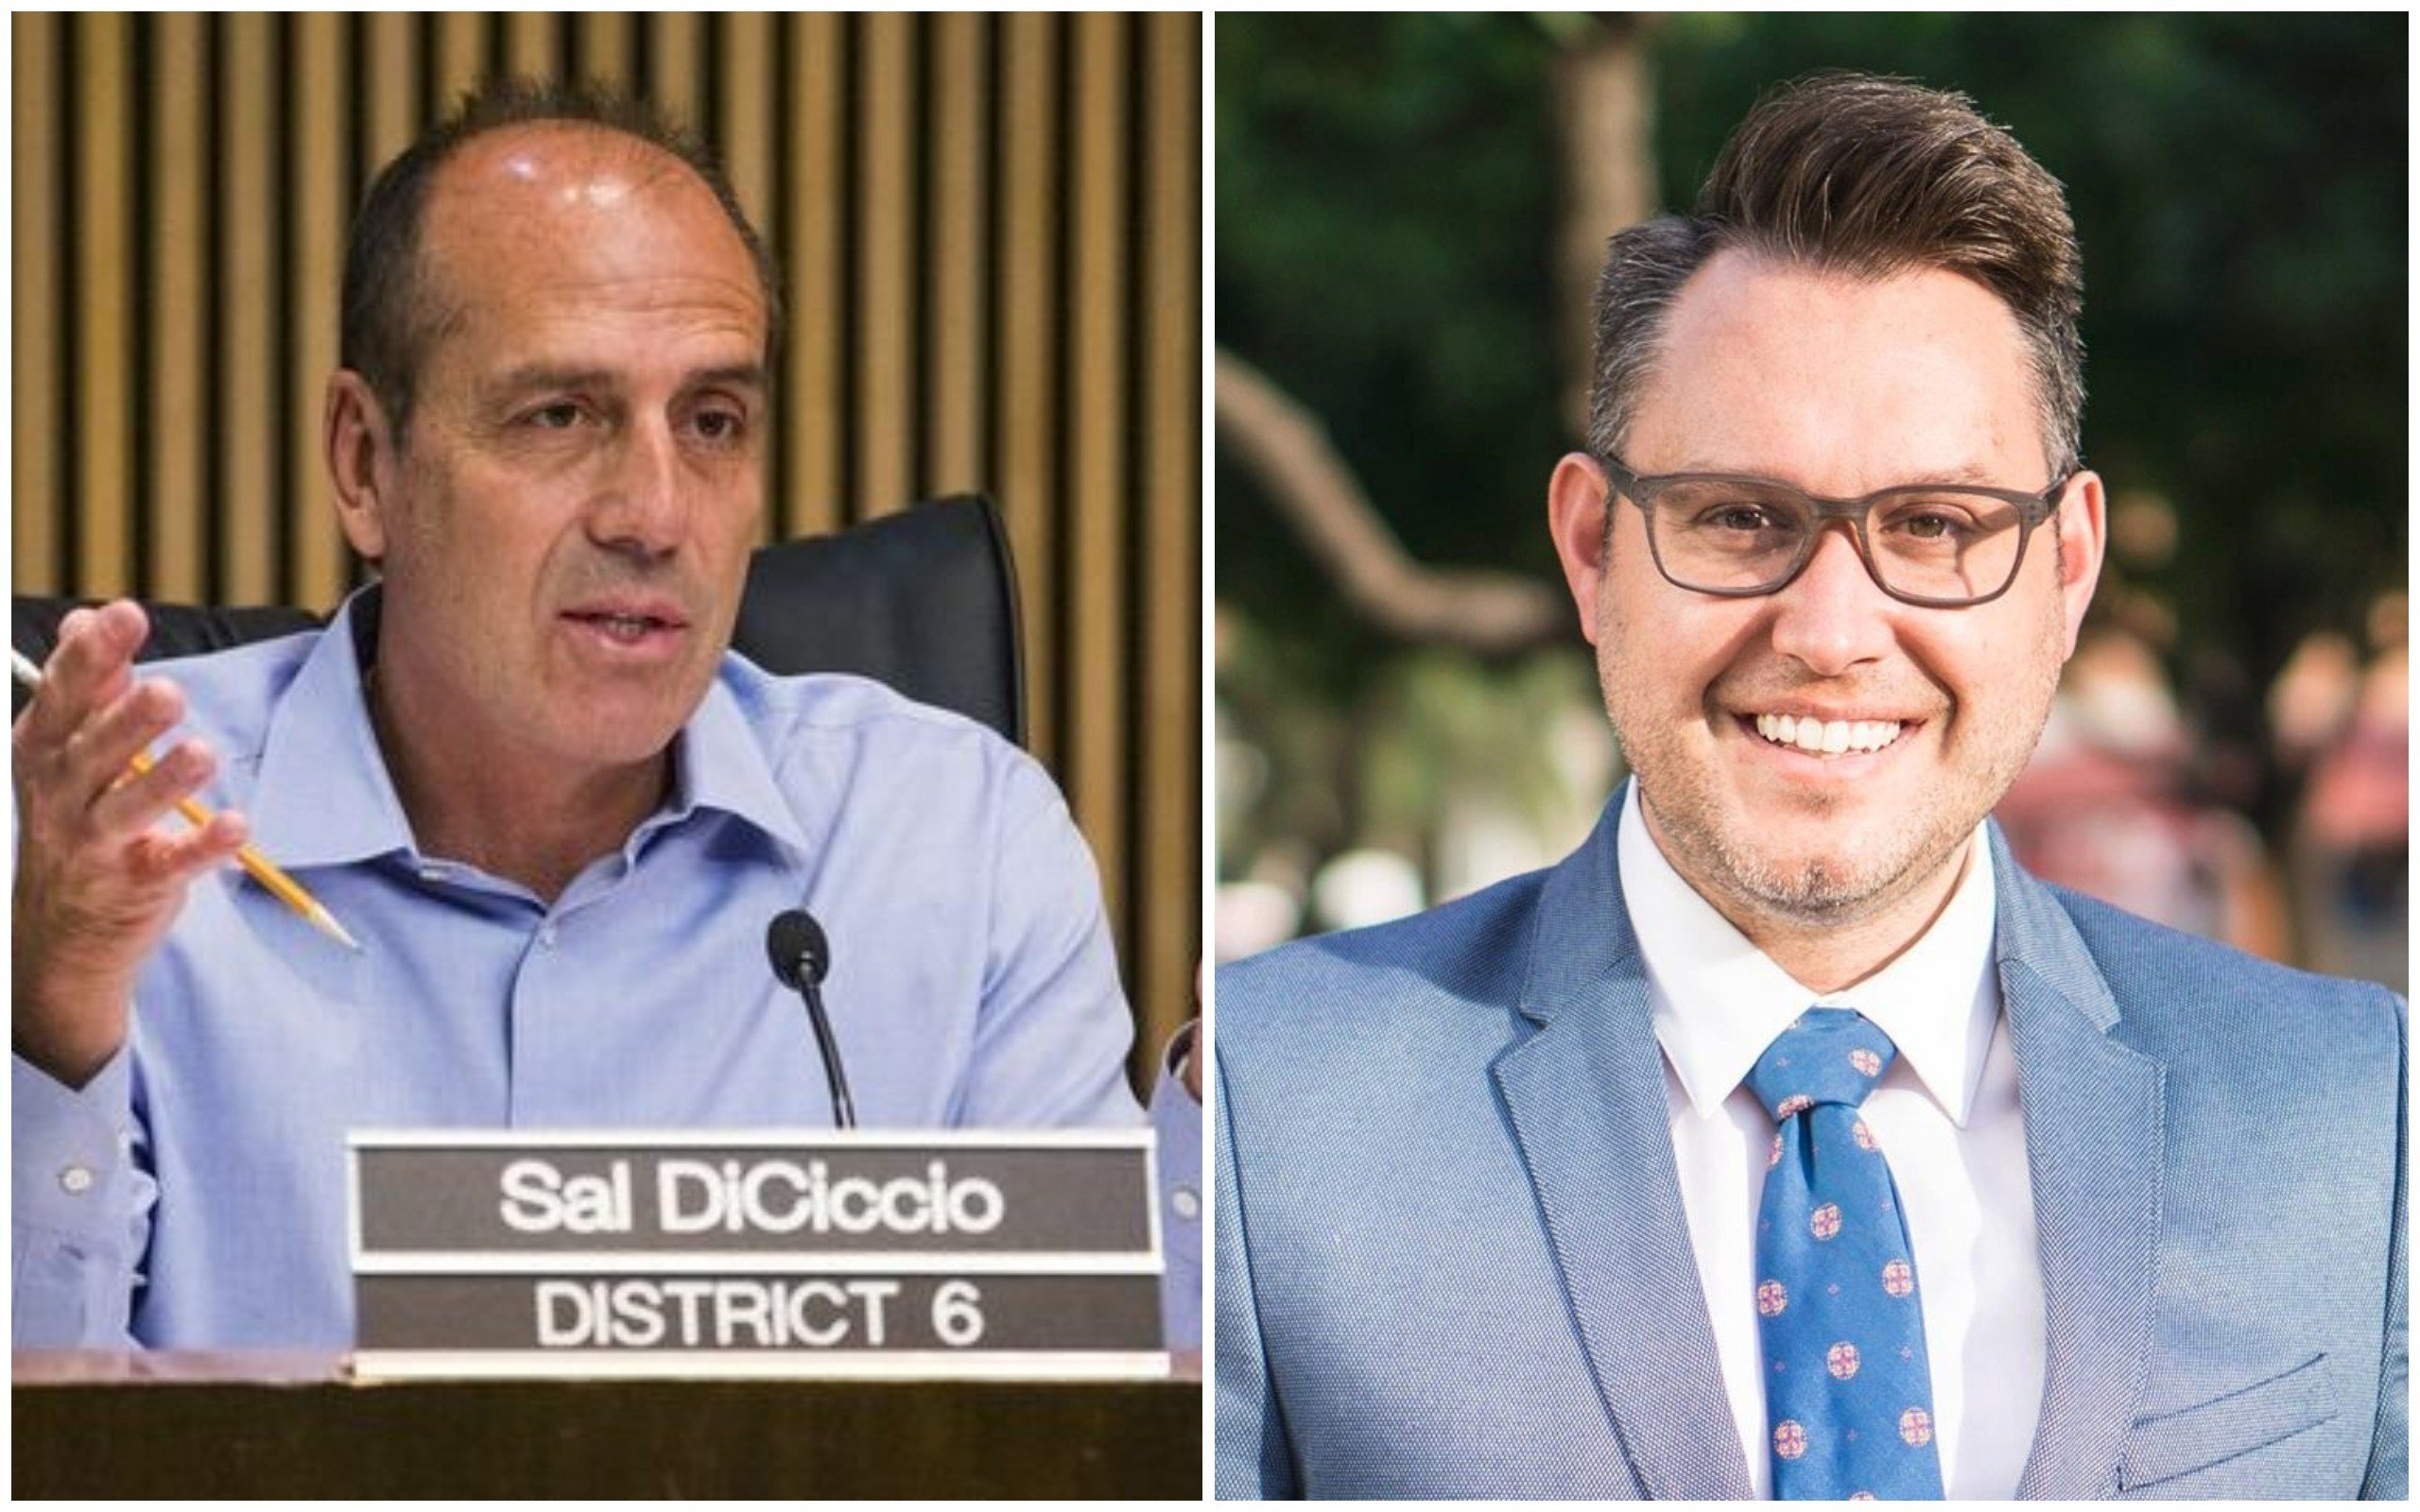 Incumbent Sal DiCiccio and challenger Kevin Patterson are vying to represent District 6 on the Phoenix City Council. (Source: Sal DiCiccio and Kevin Patterson)